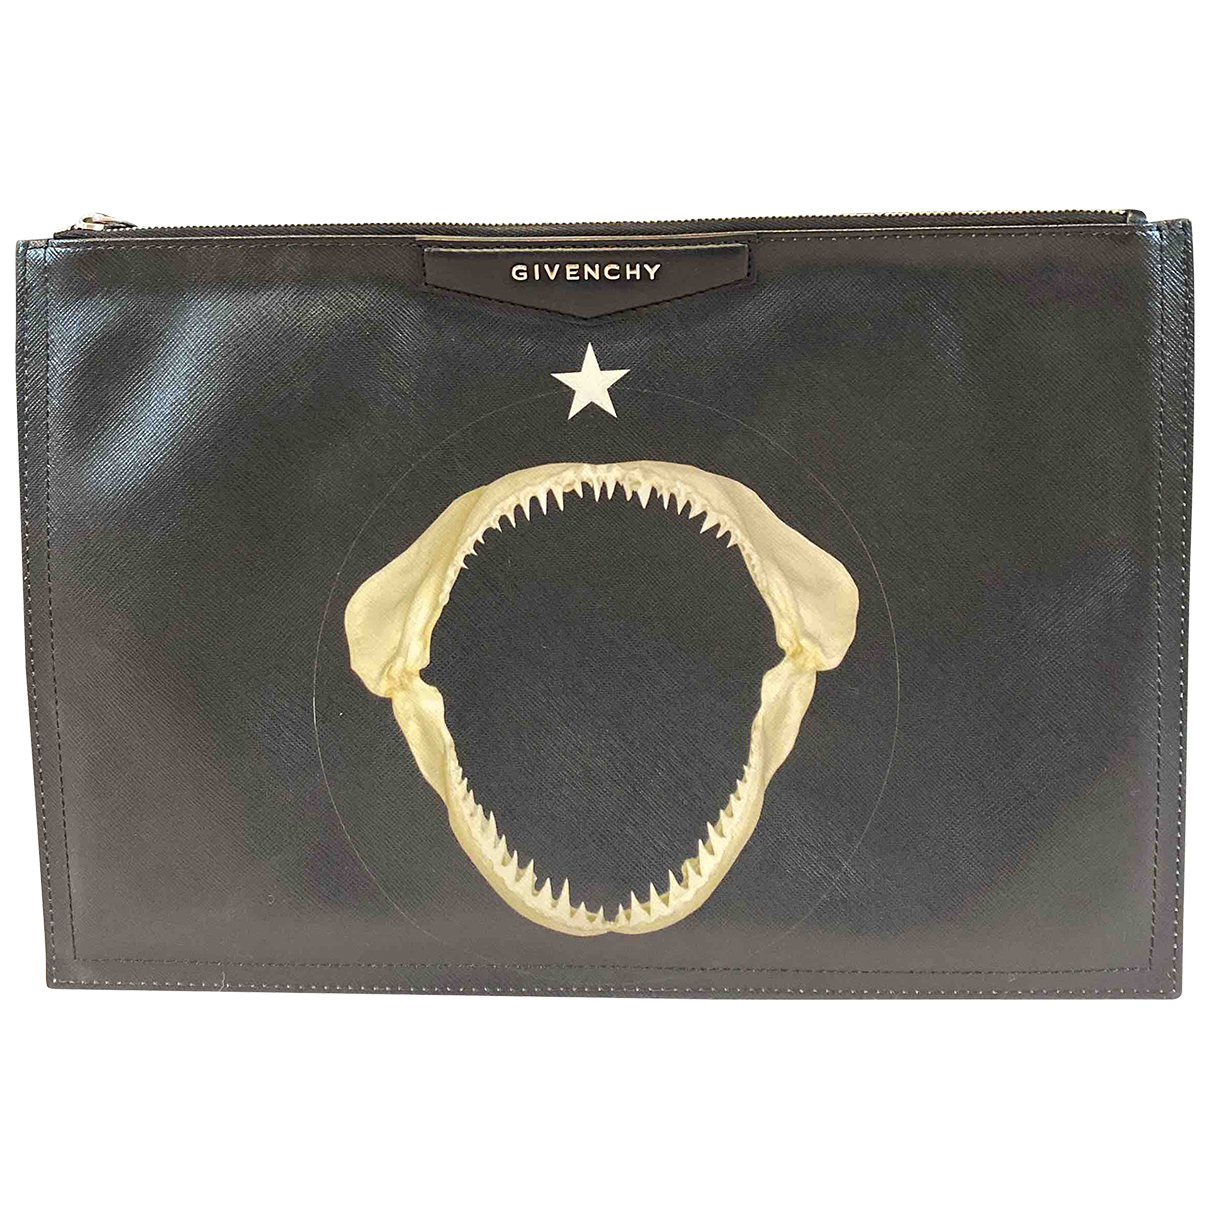 Givenchy N Black Leather Clutch bag for Women N